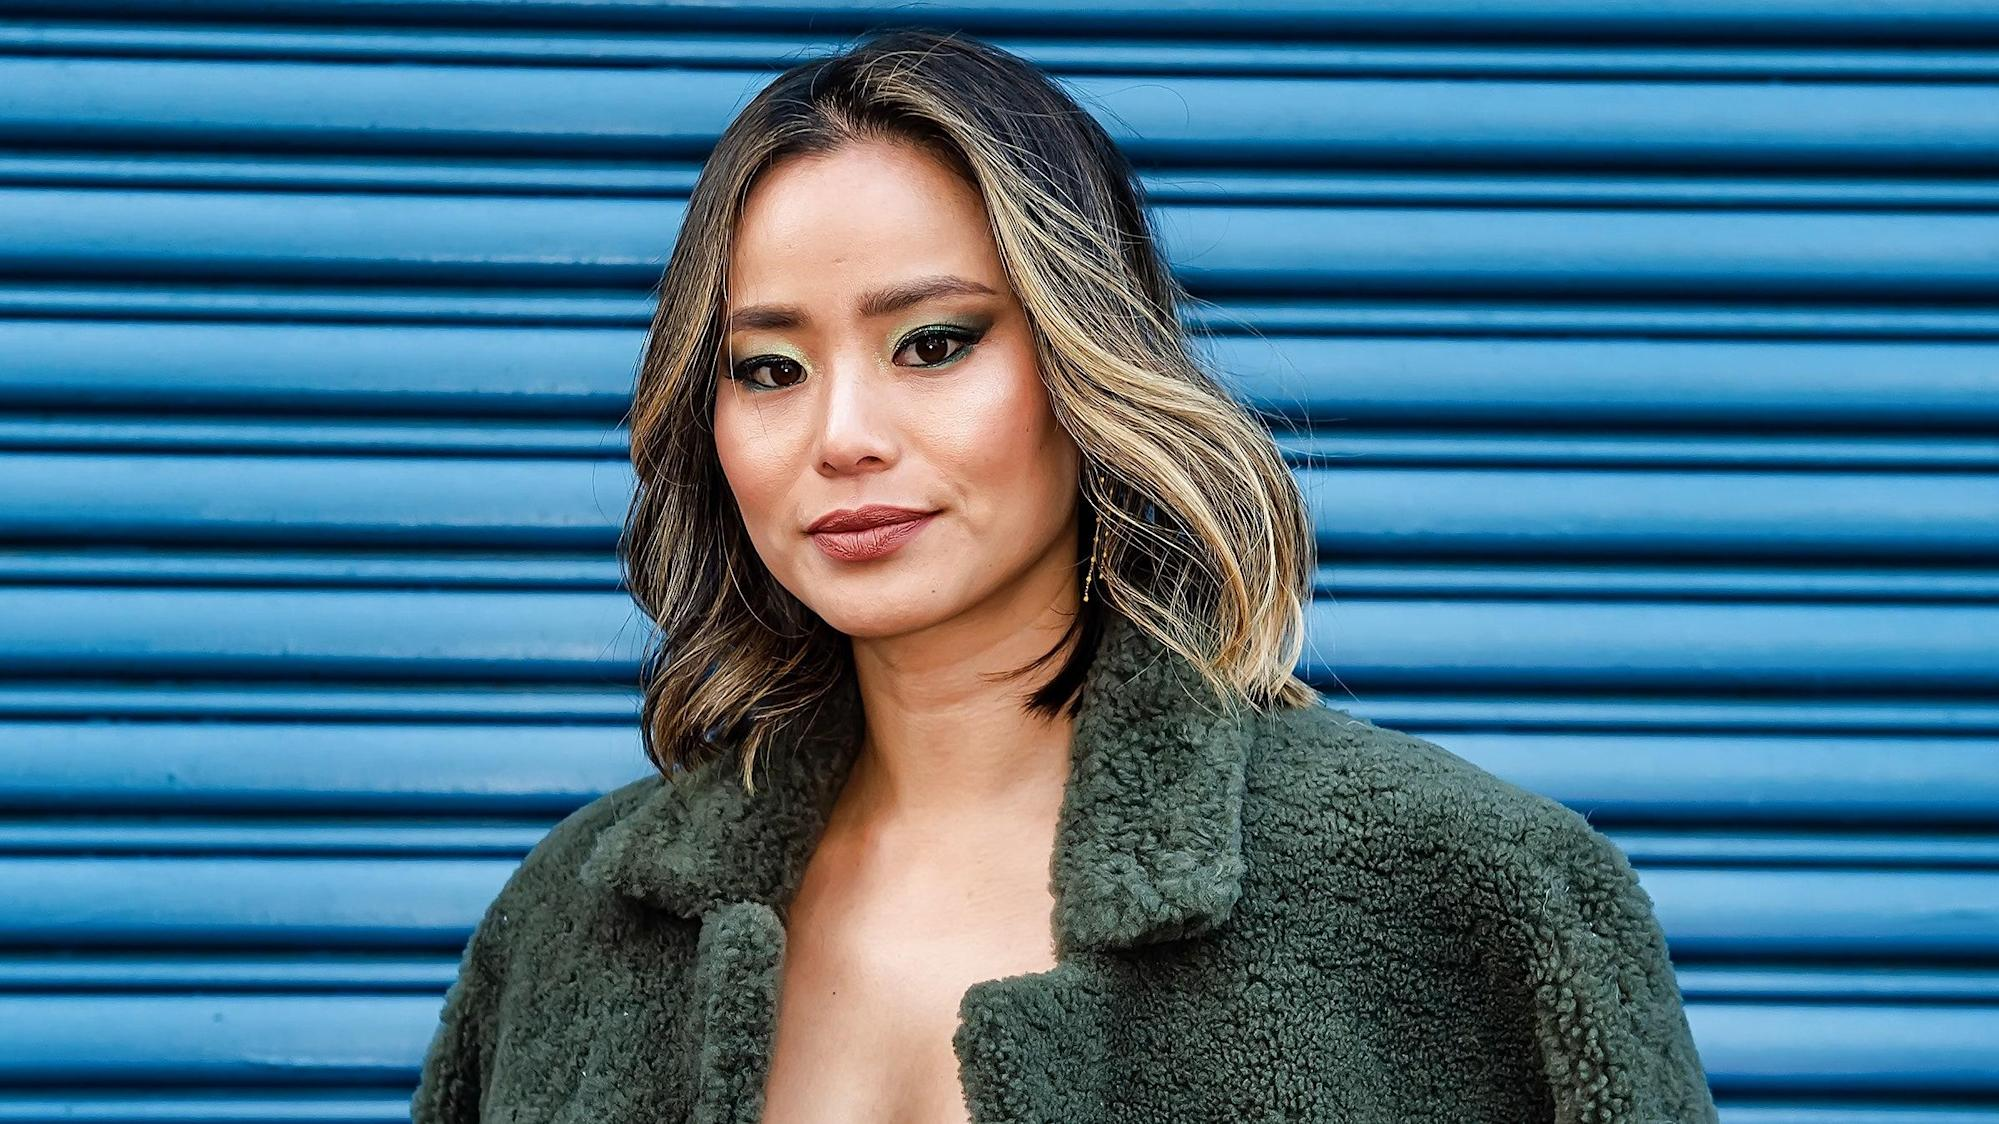 www.yahoo.com: Jamie Chung, Lana Condor, and More Celebrities Call for Change: Stop Asian Hate